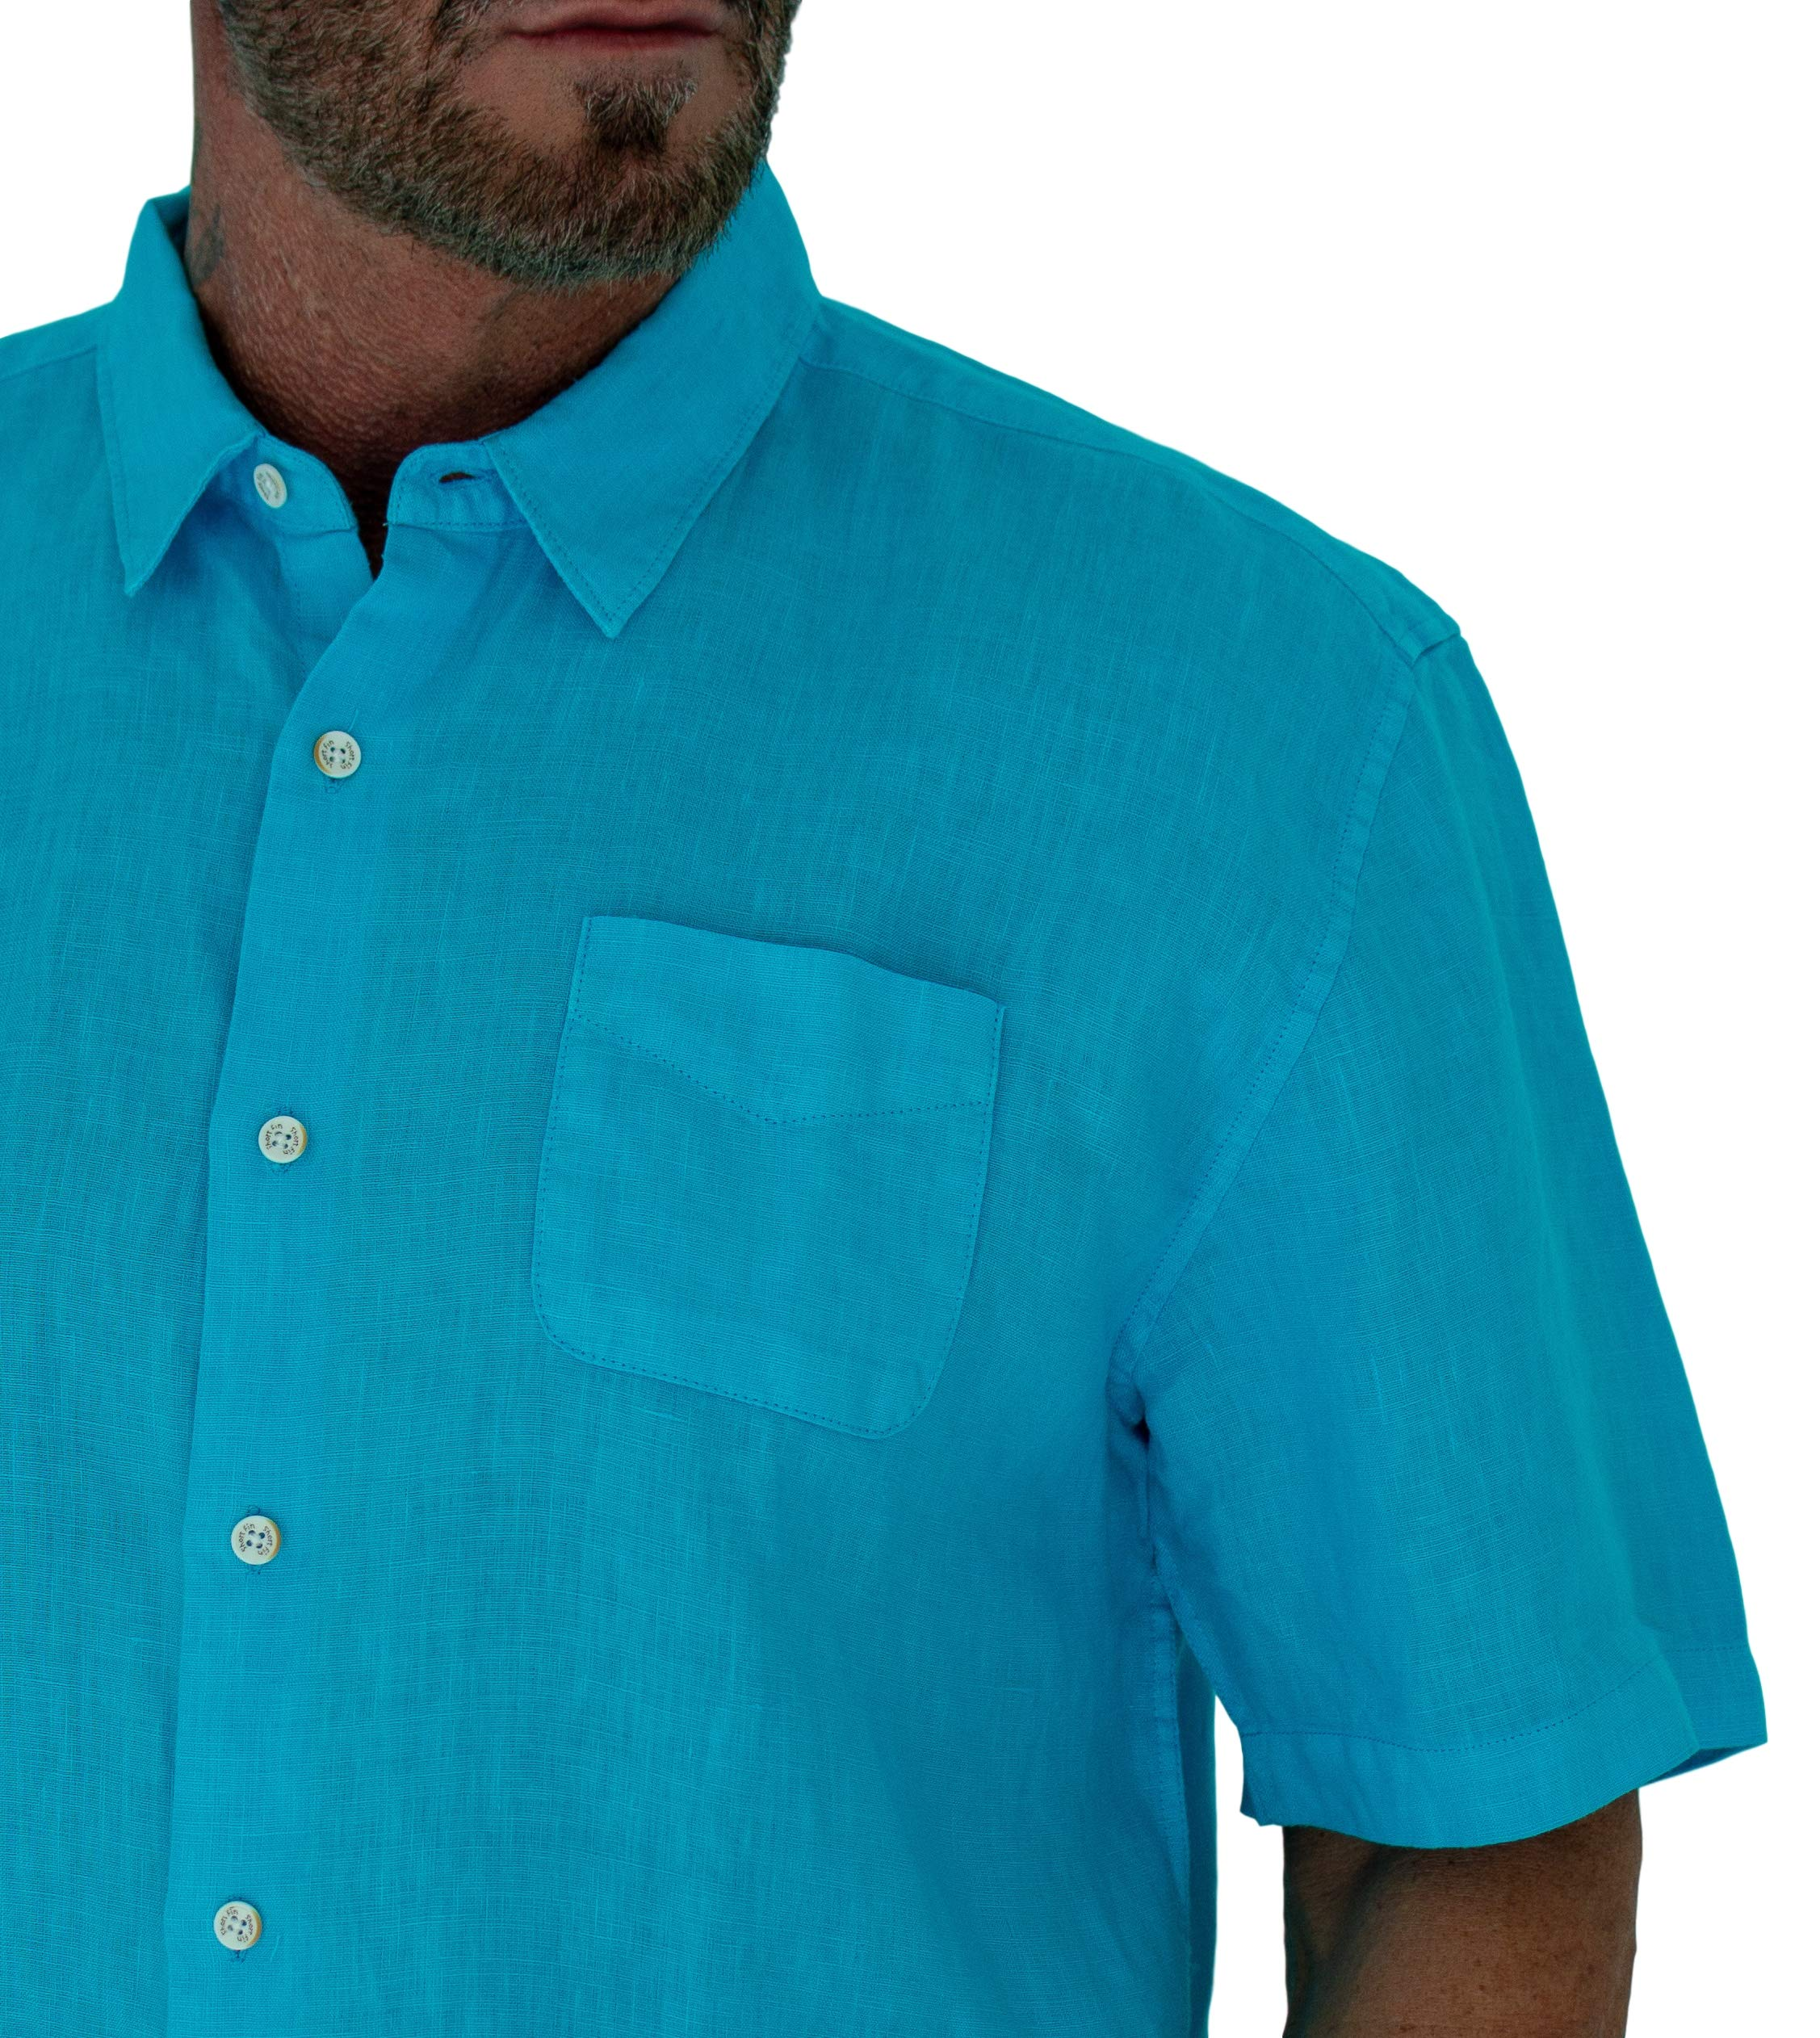 Short Fin Short Sleeve Button Down Linen Shirt (Size X Large, Neon Blue L8040L) by Short Fin (Image #4)